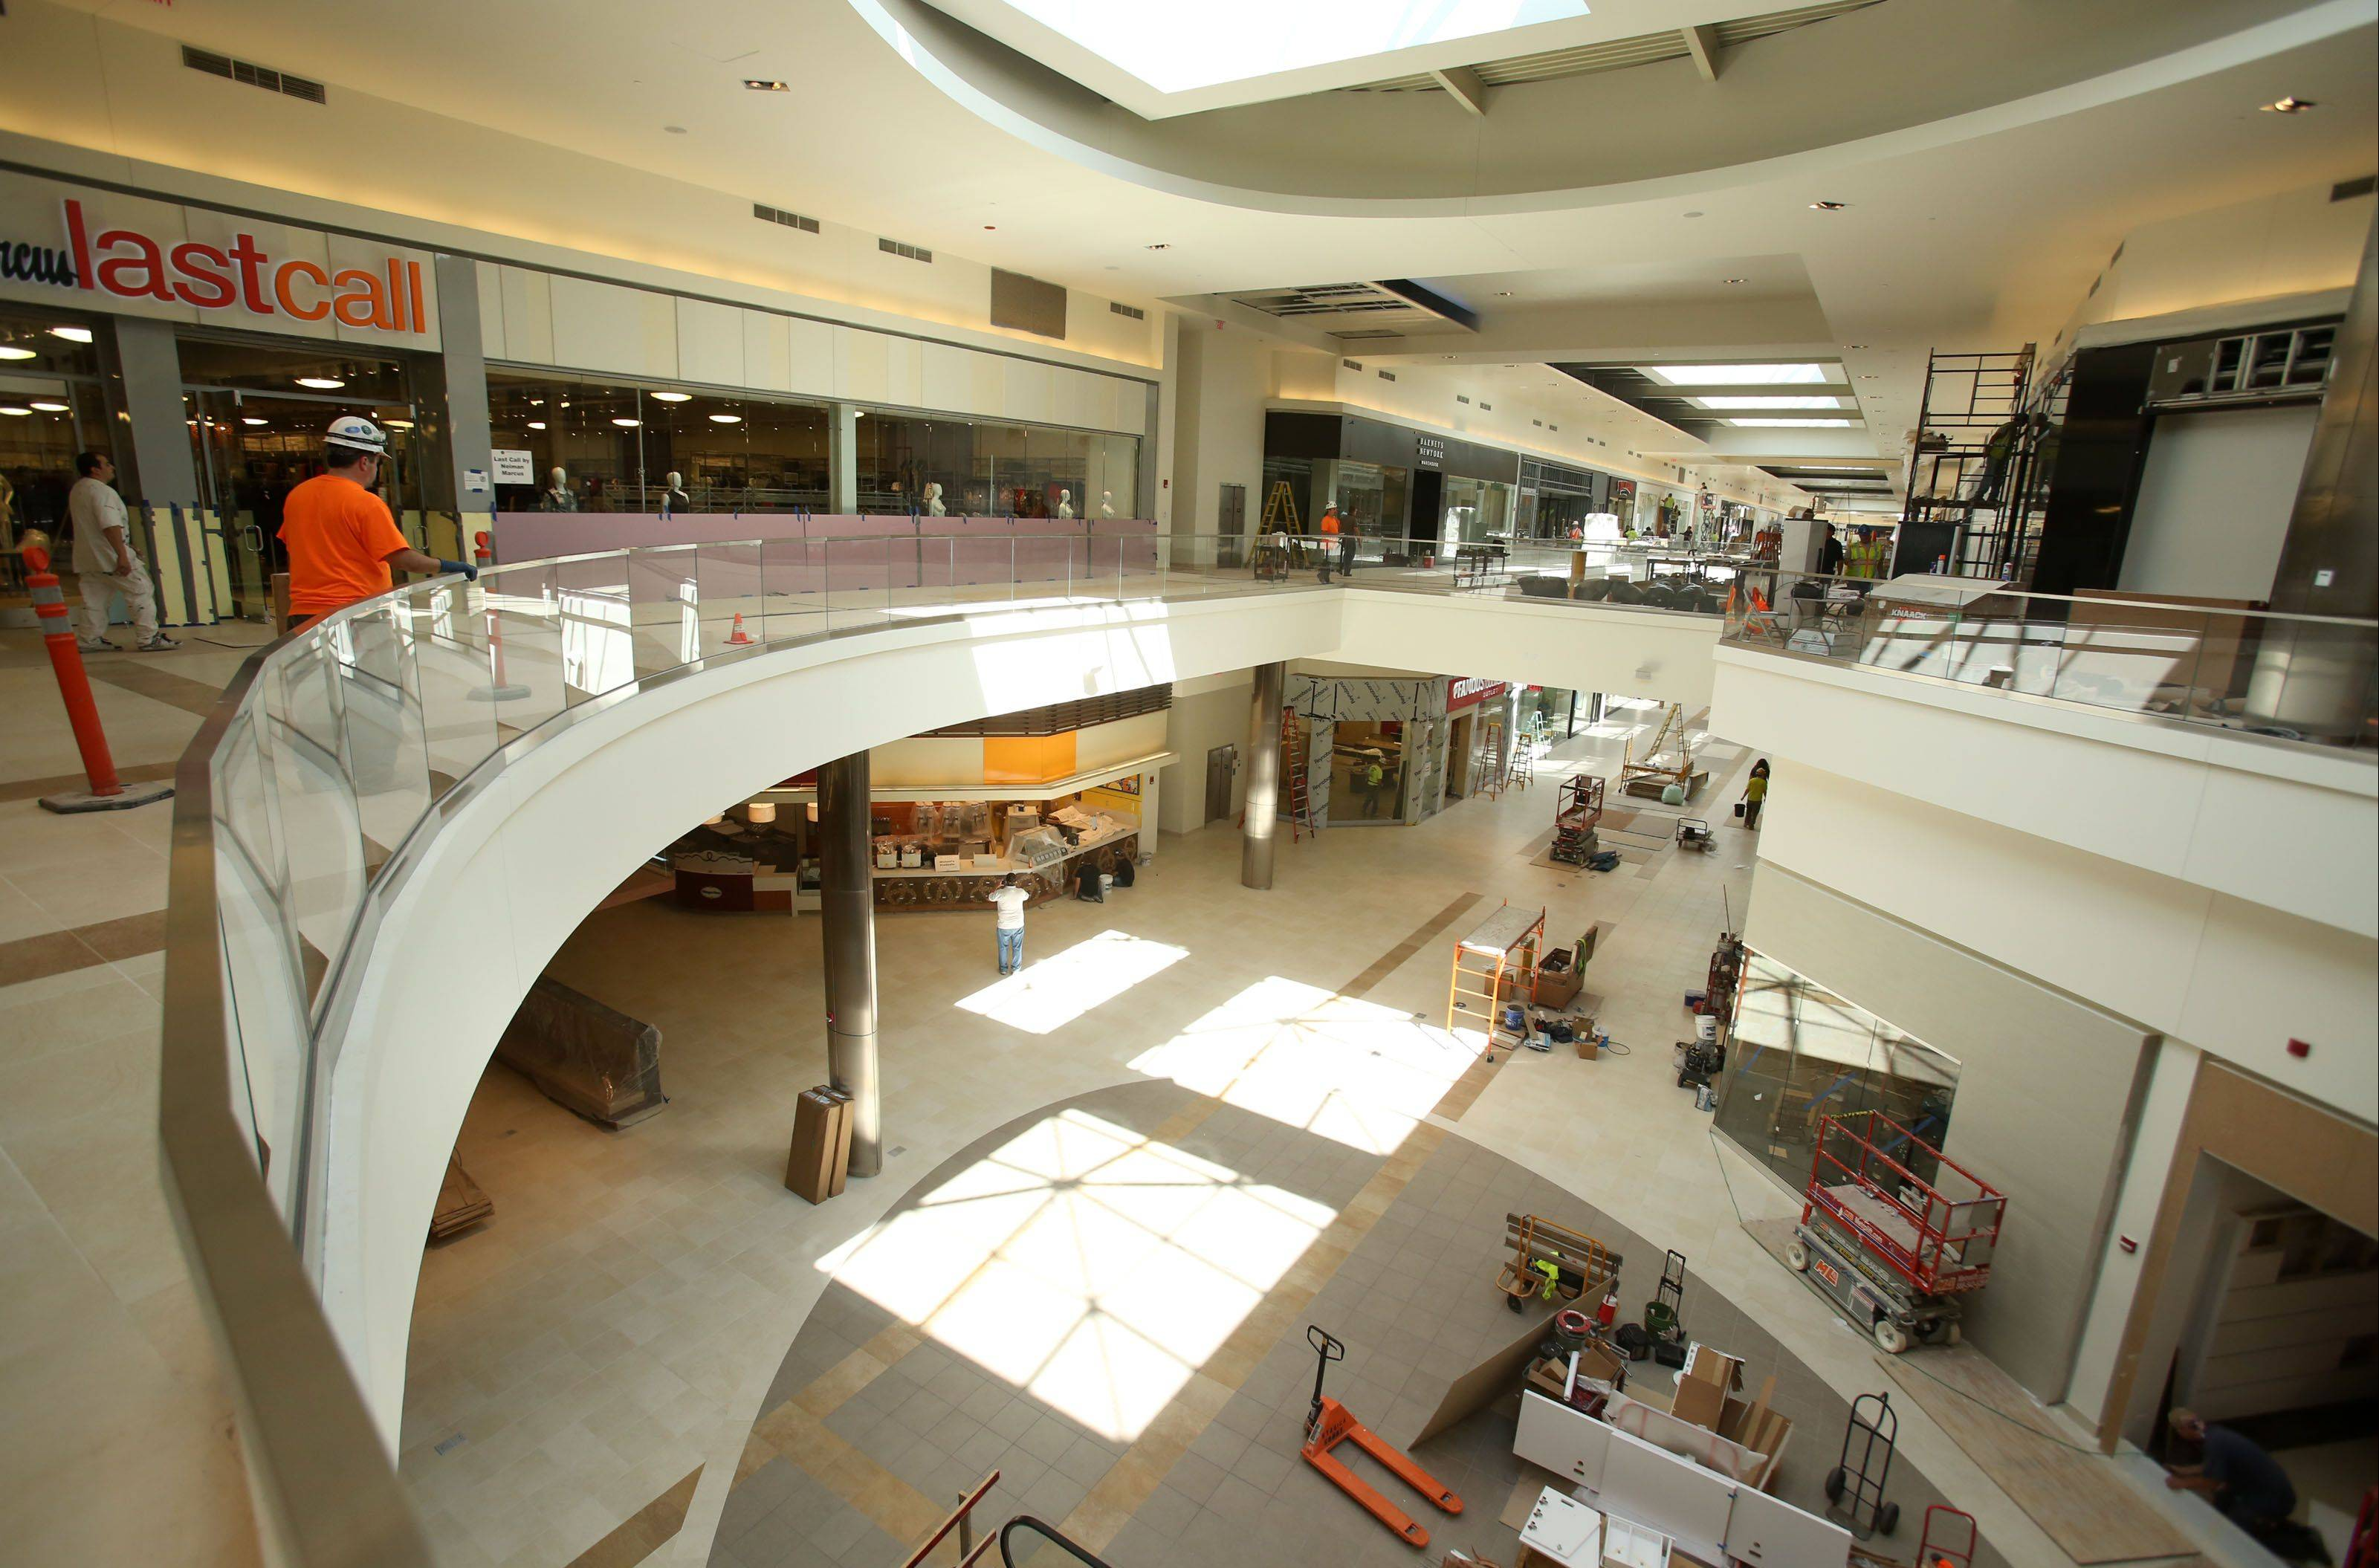 Workers put finishing touches on the inside of Fashion Outlets of Chicago in Rosemont ahead of its opening Thursday. Aug. 1.